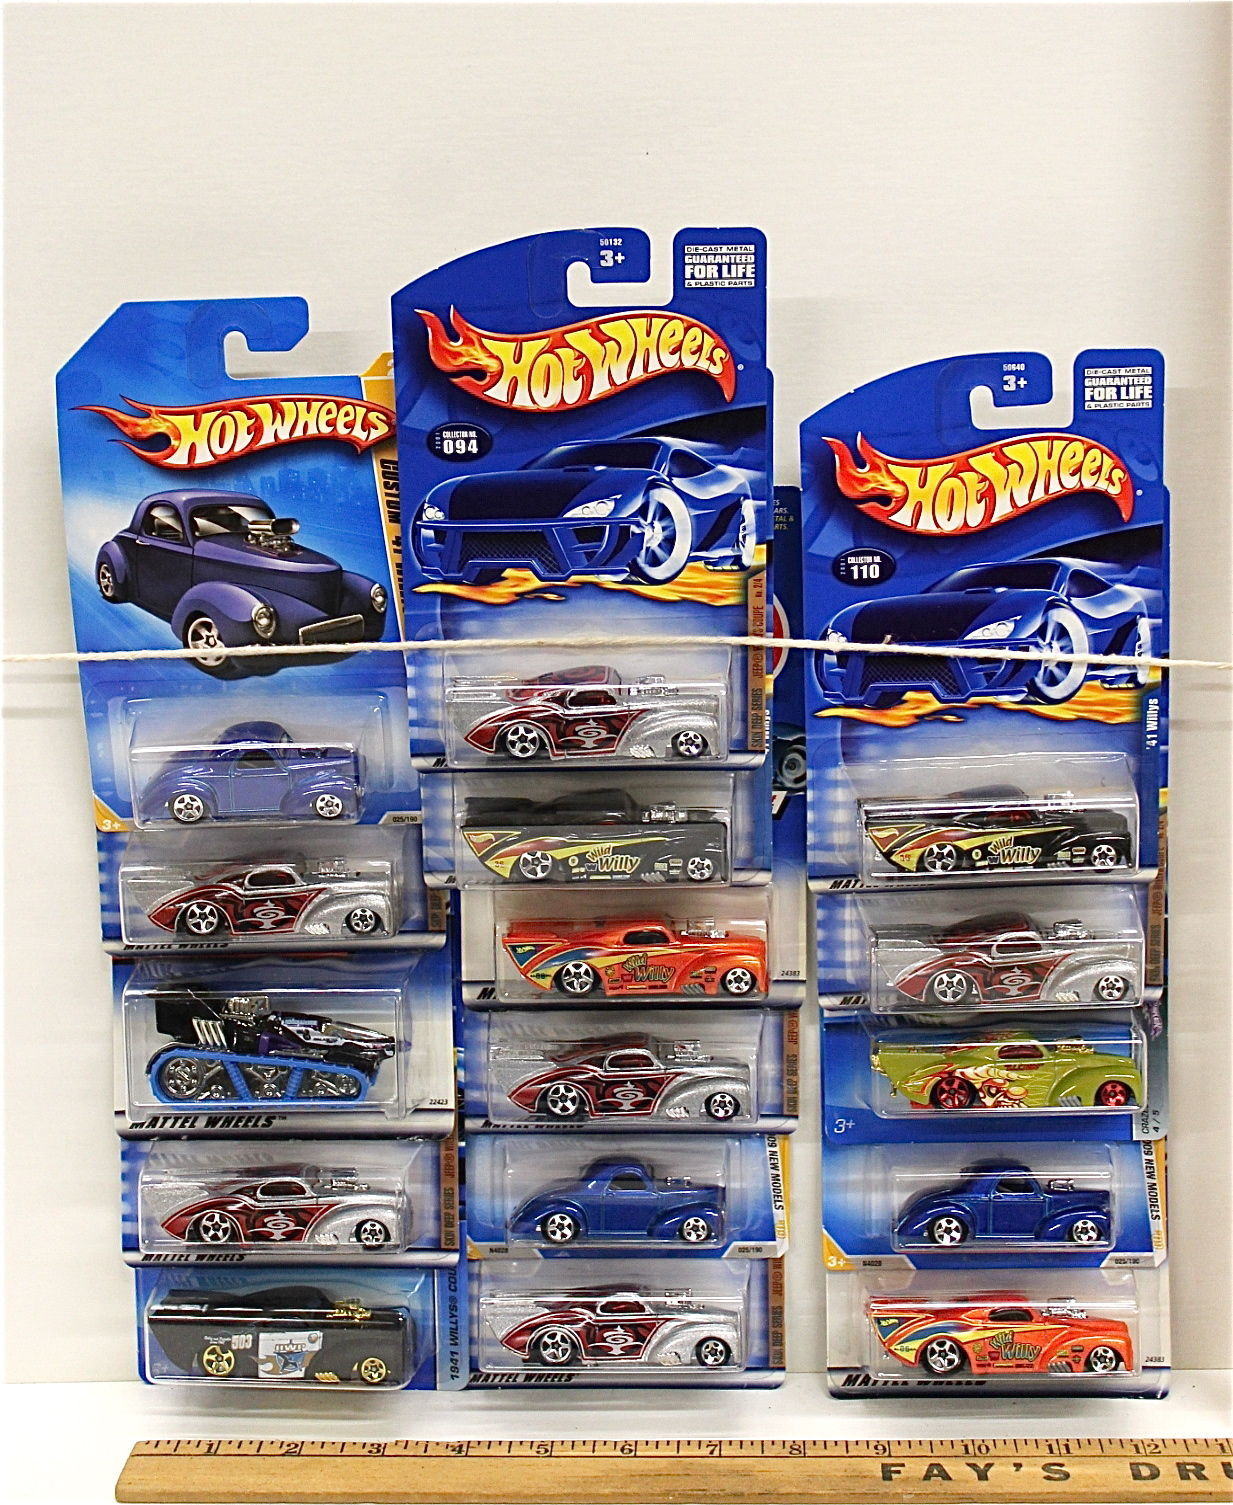 16 Hot Wheels Vintage 1941 Willys Coupe and 50 similar items